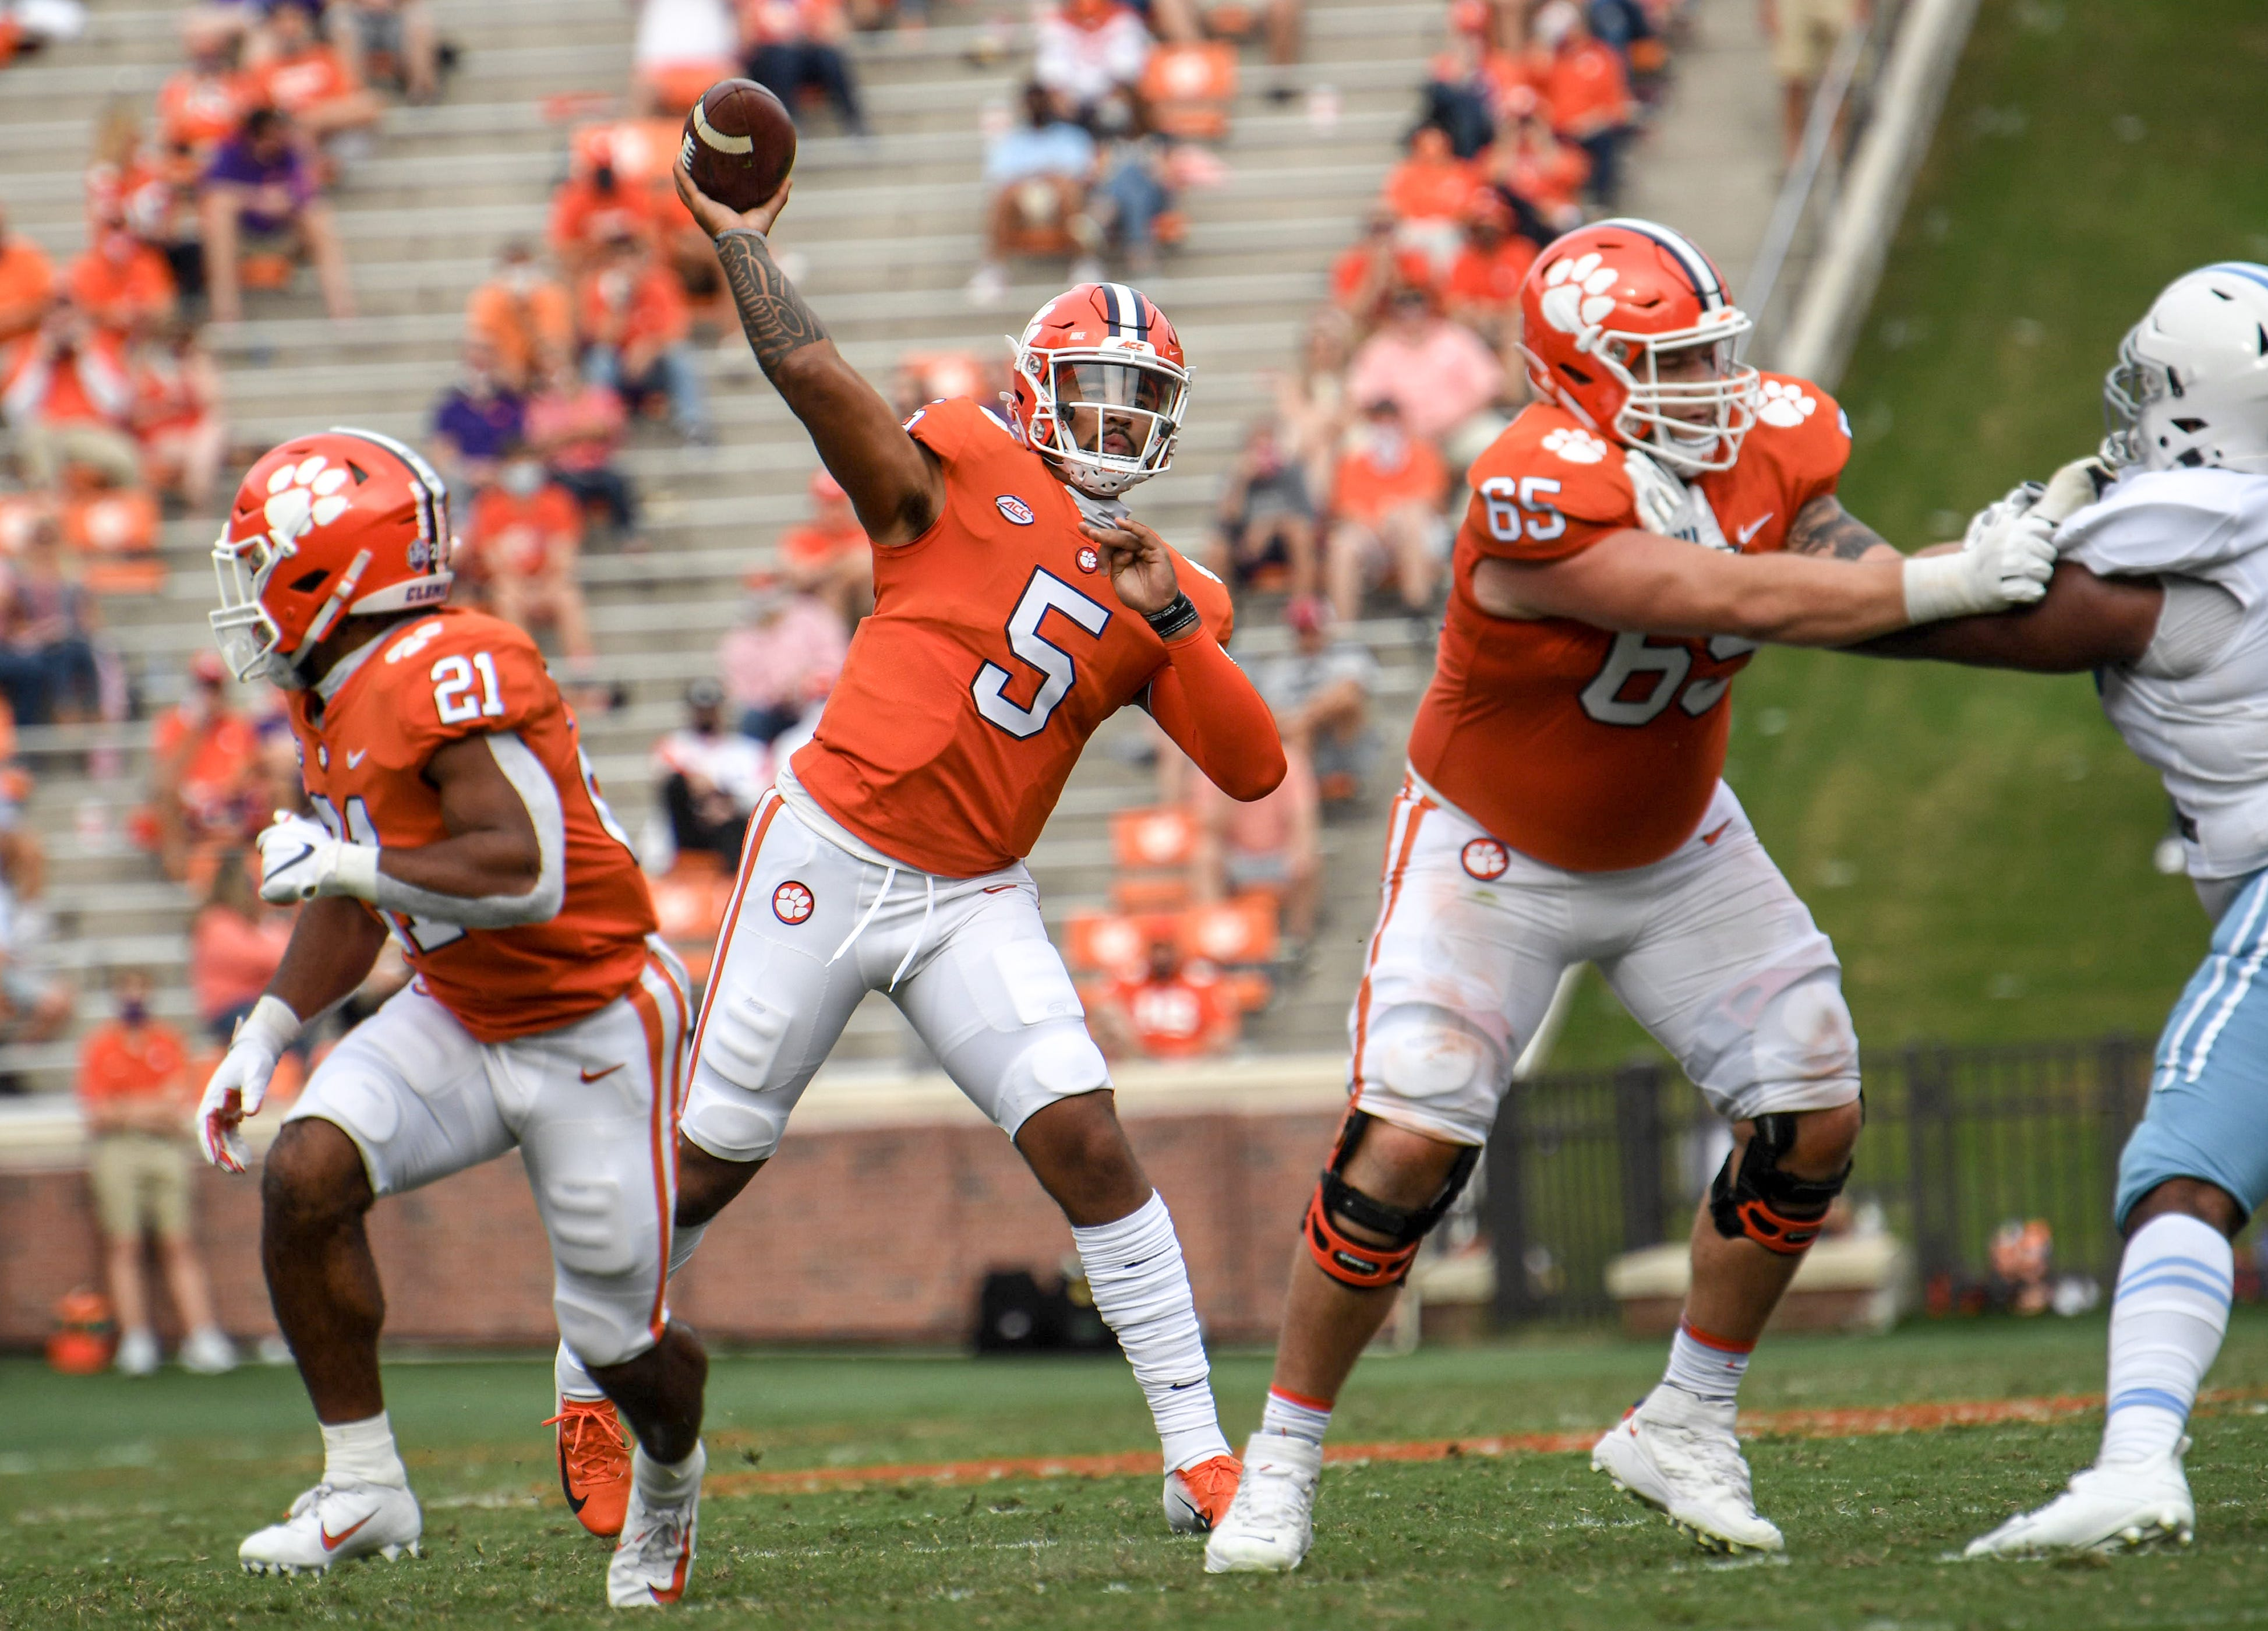 Uiagalelei next big name in remarkable string of Clemson quarterbacks